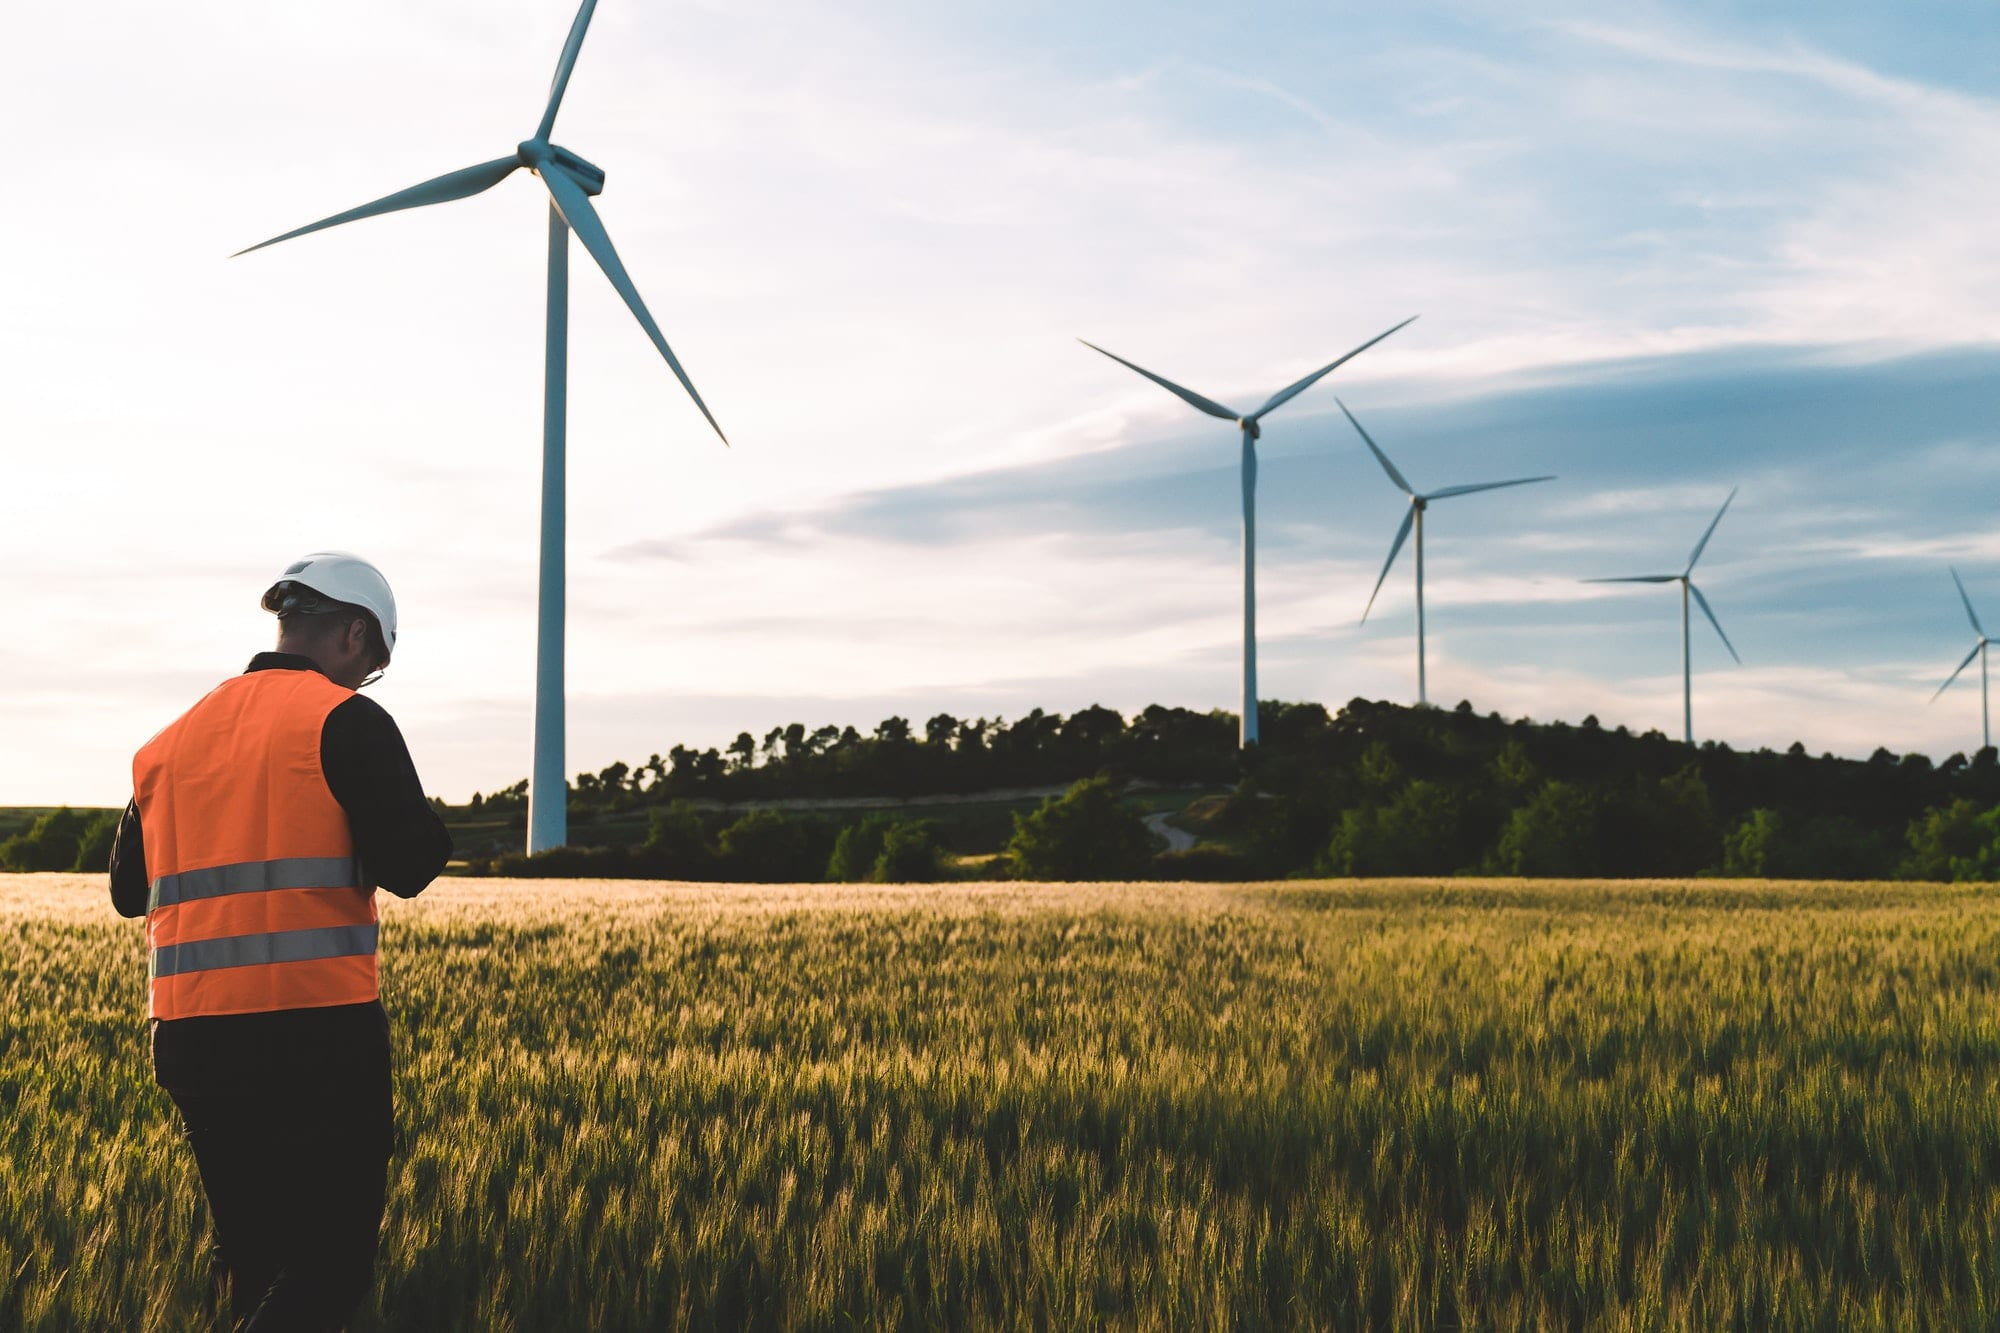 engineer working at alternative renewable wind energy farm sustainable energy industry concept